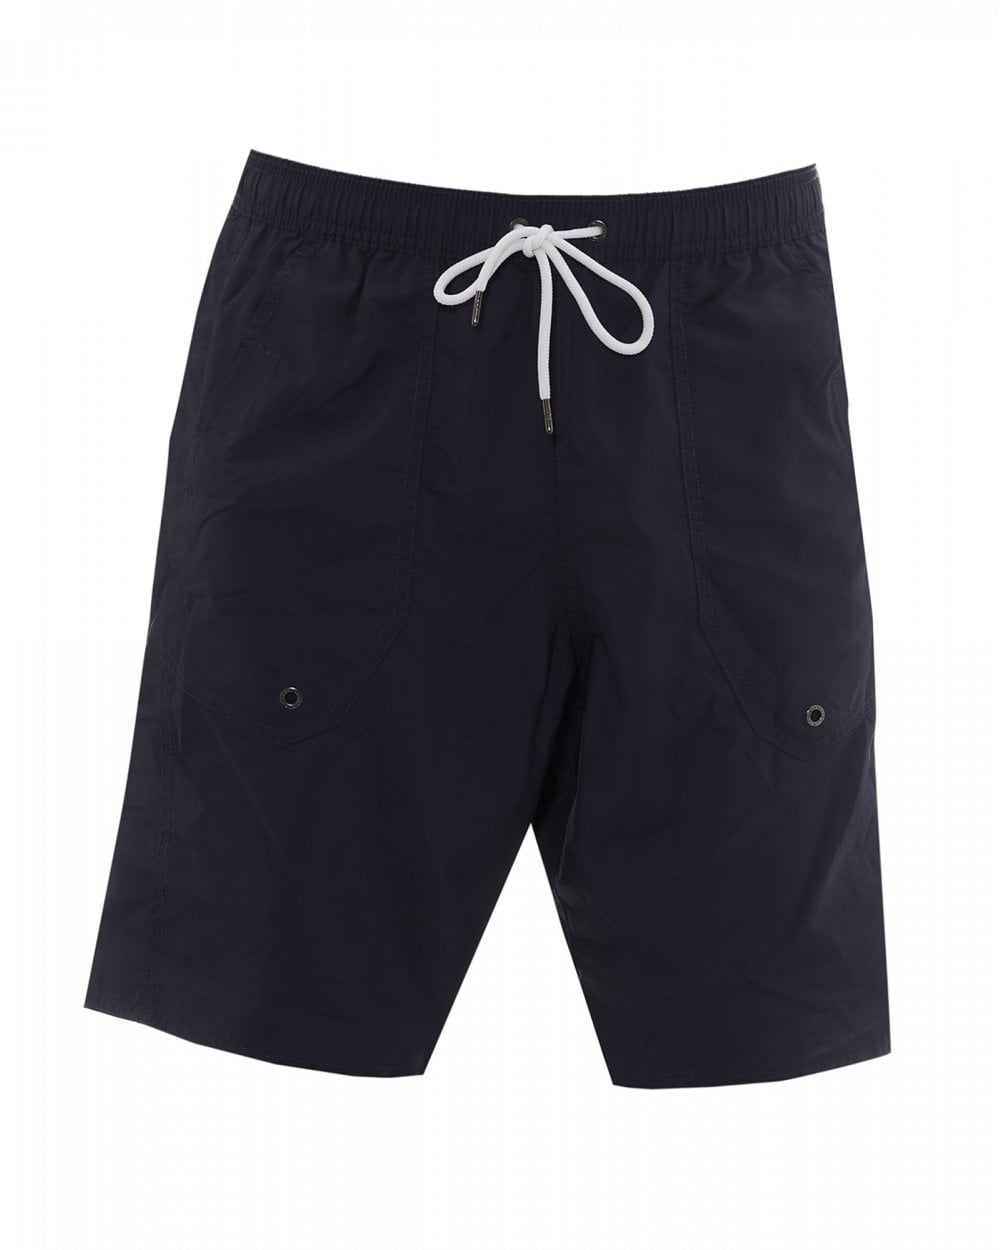 0c3f54e897 Emporio Armani Mens Broadshort Swimming Trunks, Navy Blue ...